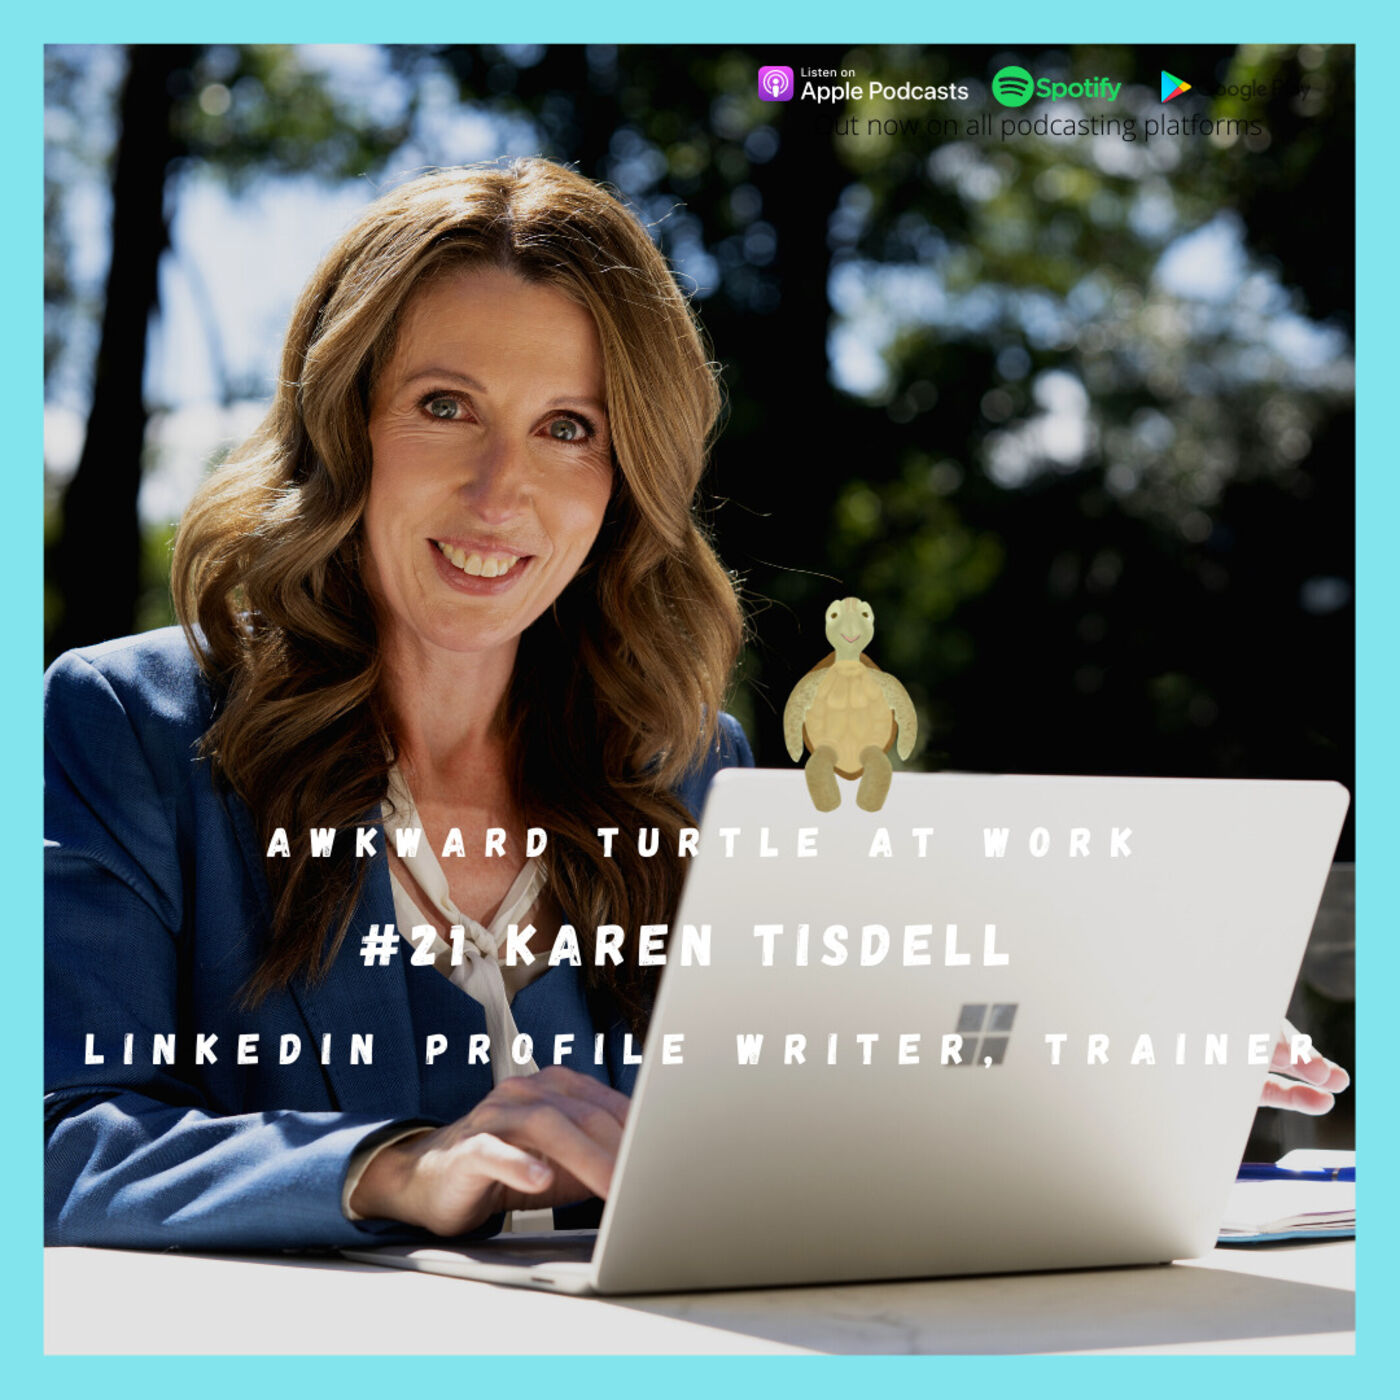 Why is LinkedIn important? Why do you have a LinkedIn Profile? Karen Tisdell - LinkedIn Profile Writer, Trainer #21